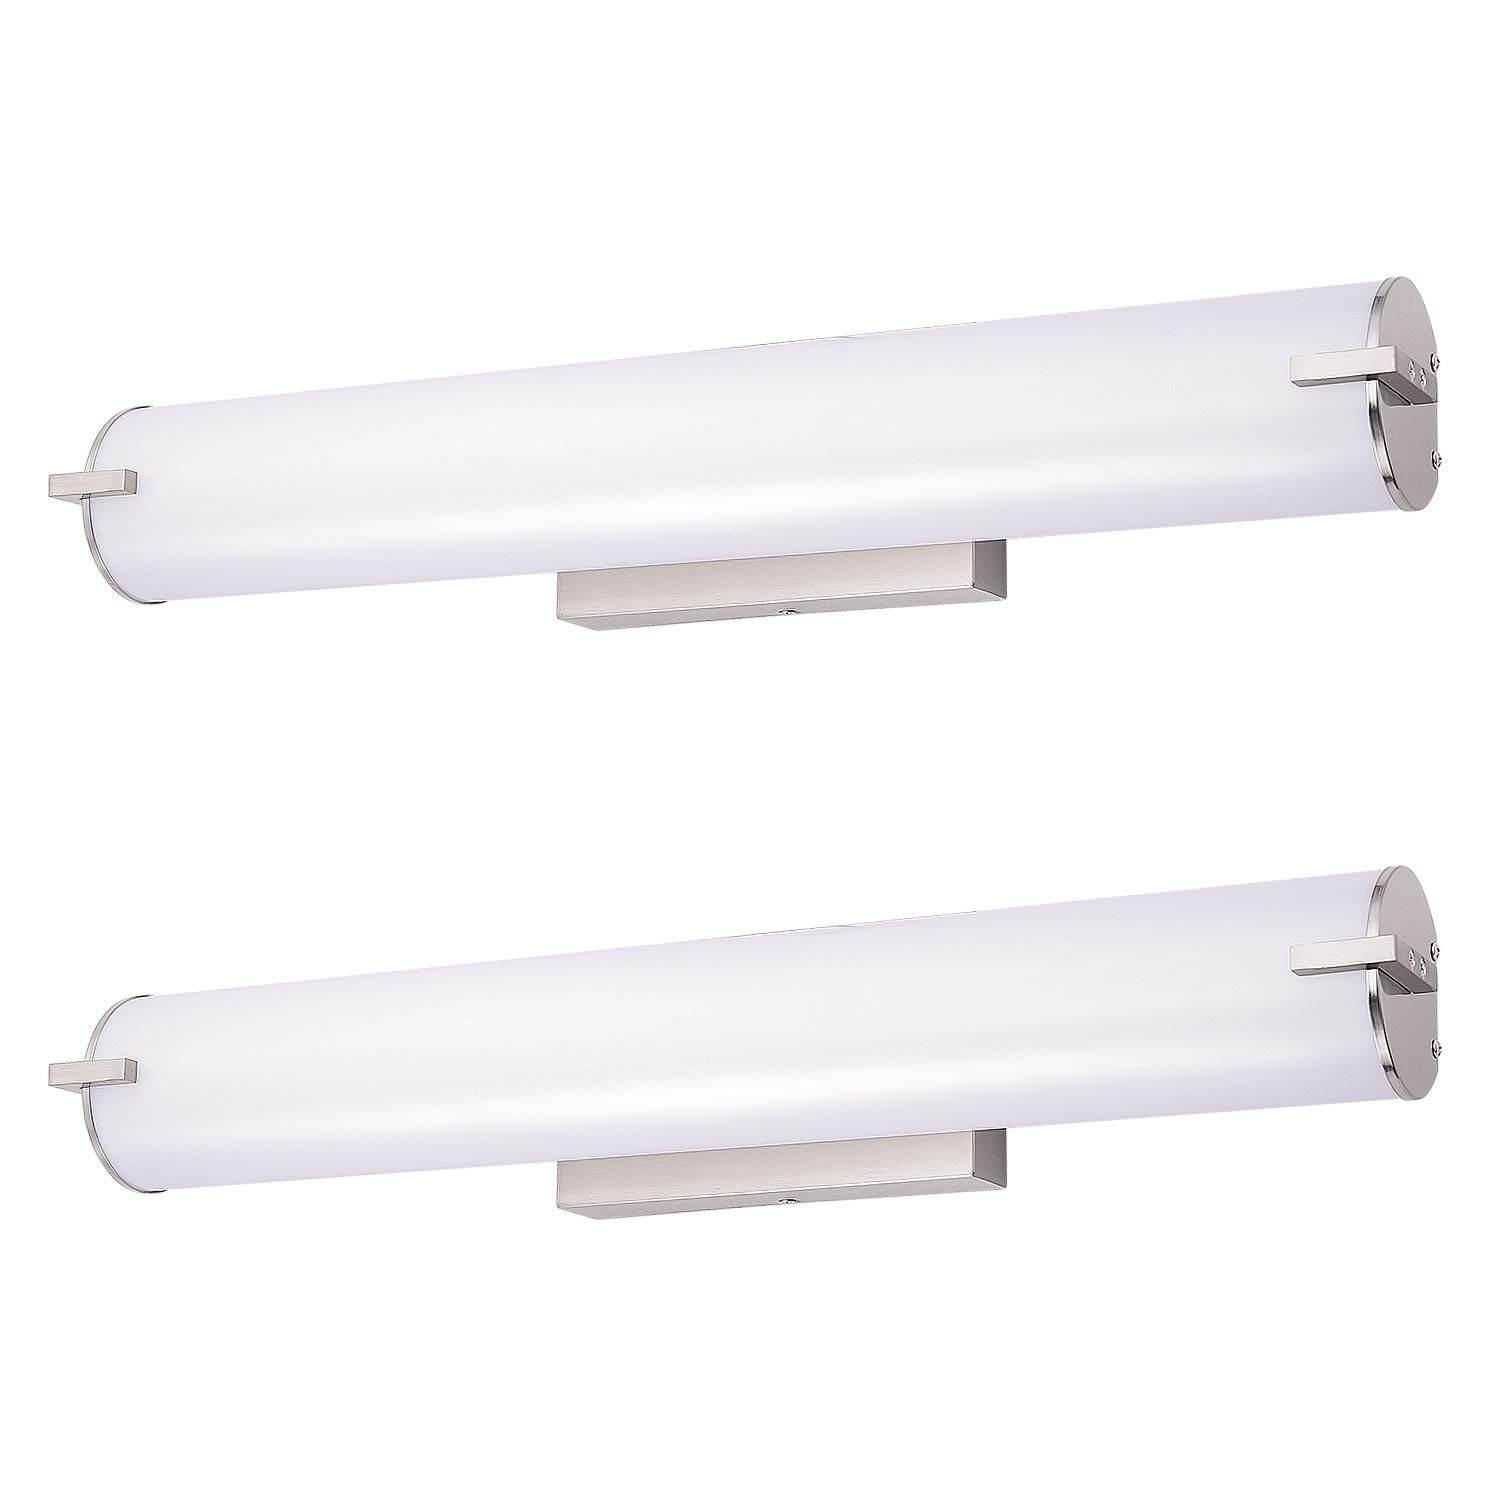 OSTWIN 24 2 pack LED Bathroom Wall Sconce Lighting Fixture, Bathroom Vanity Light 25W 125 W Repl 5000K Day Light, 1750Lm,Vertical or Horizontal Tube, 160 Beam Angle ETL and Energy Star Listed